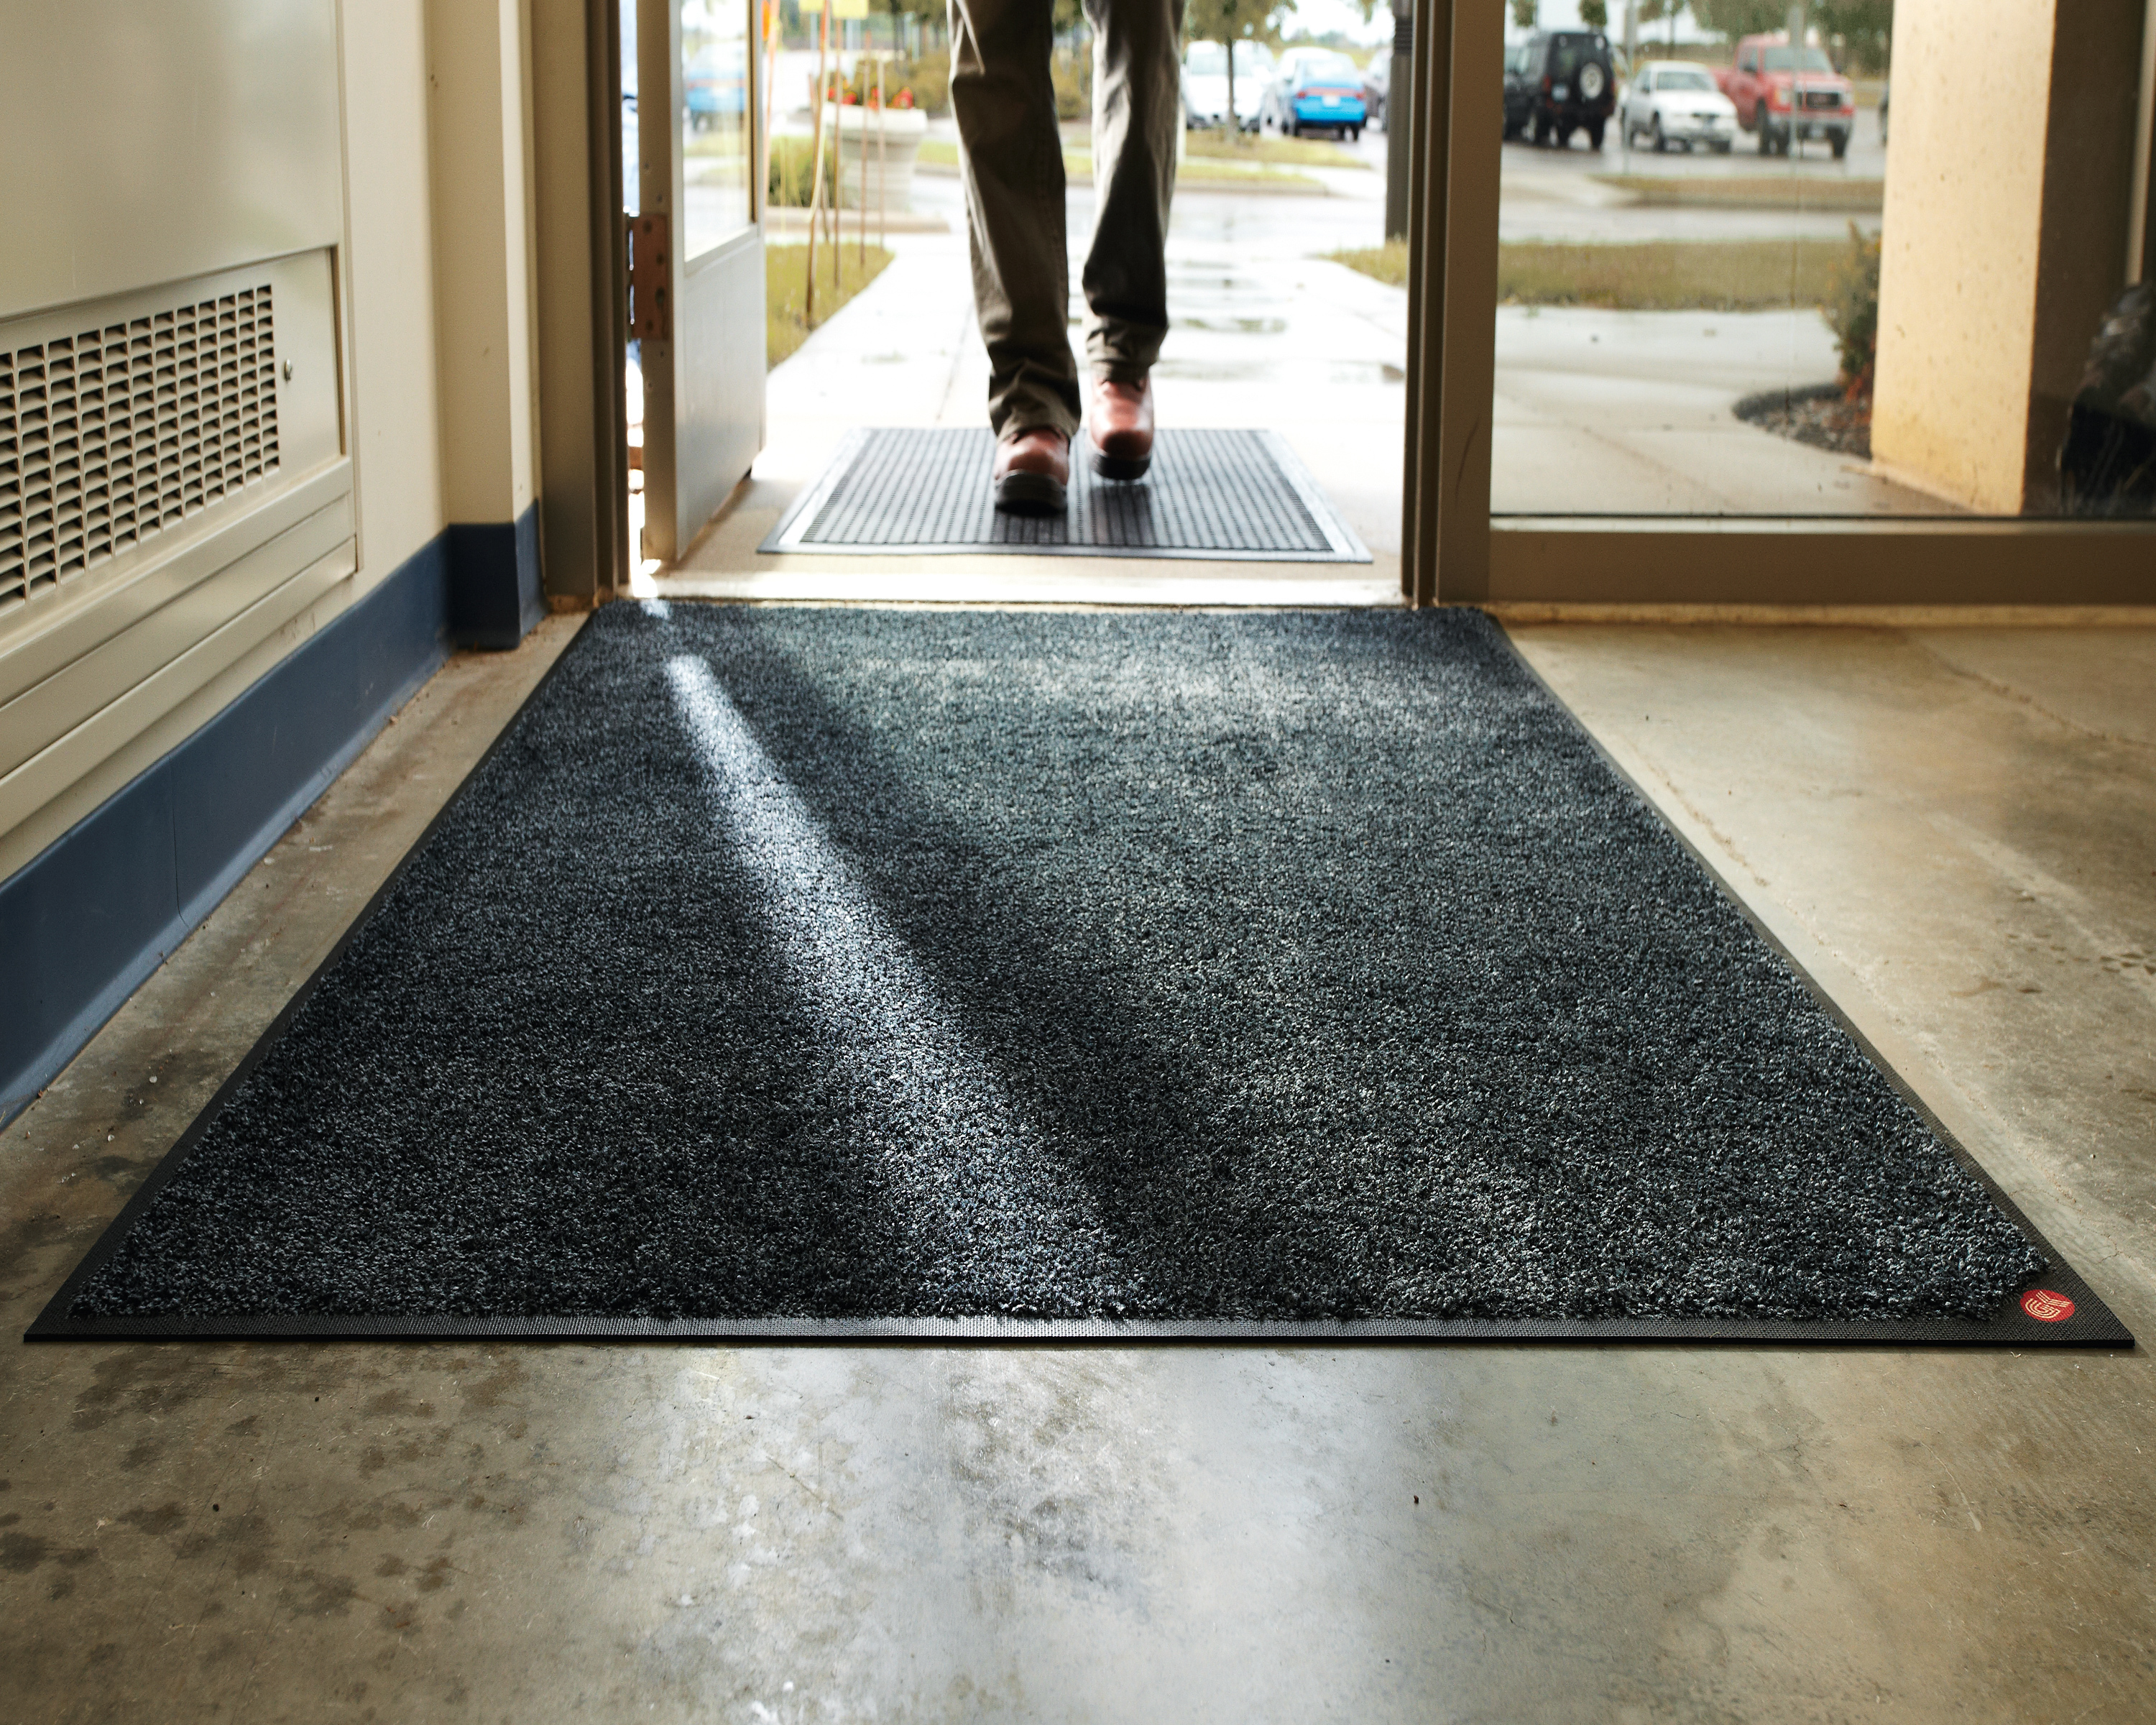 G Amp K Services Promotes Winter Safety With Floor Mat Tips